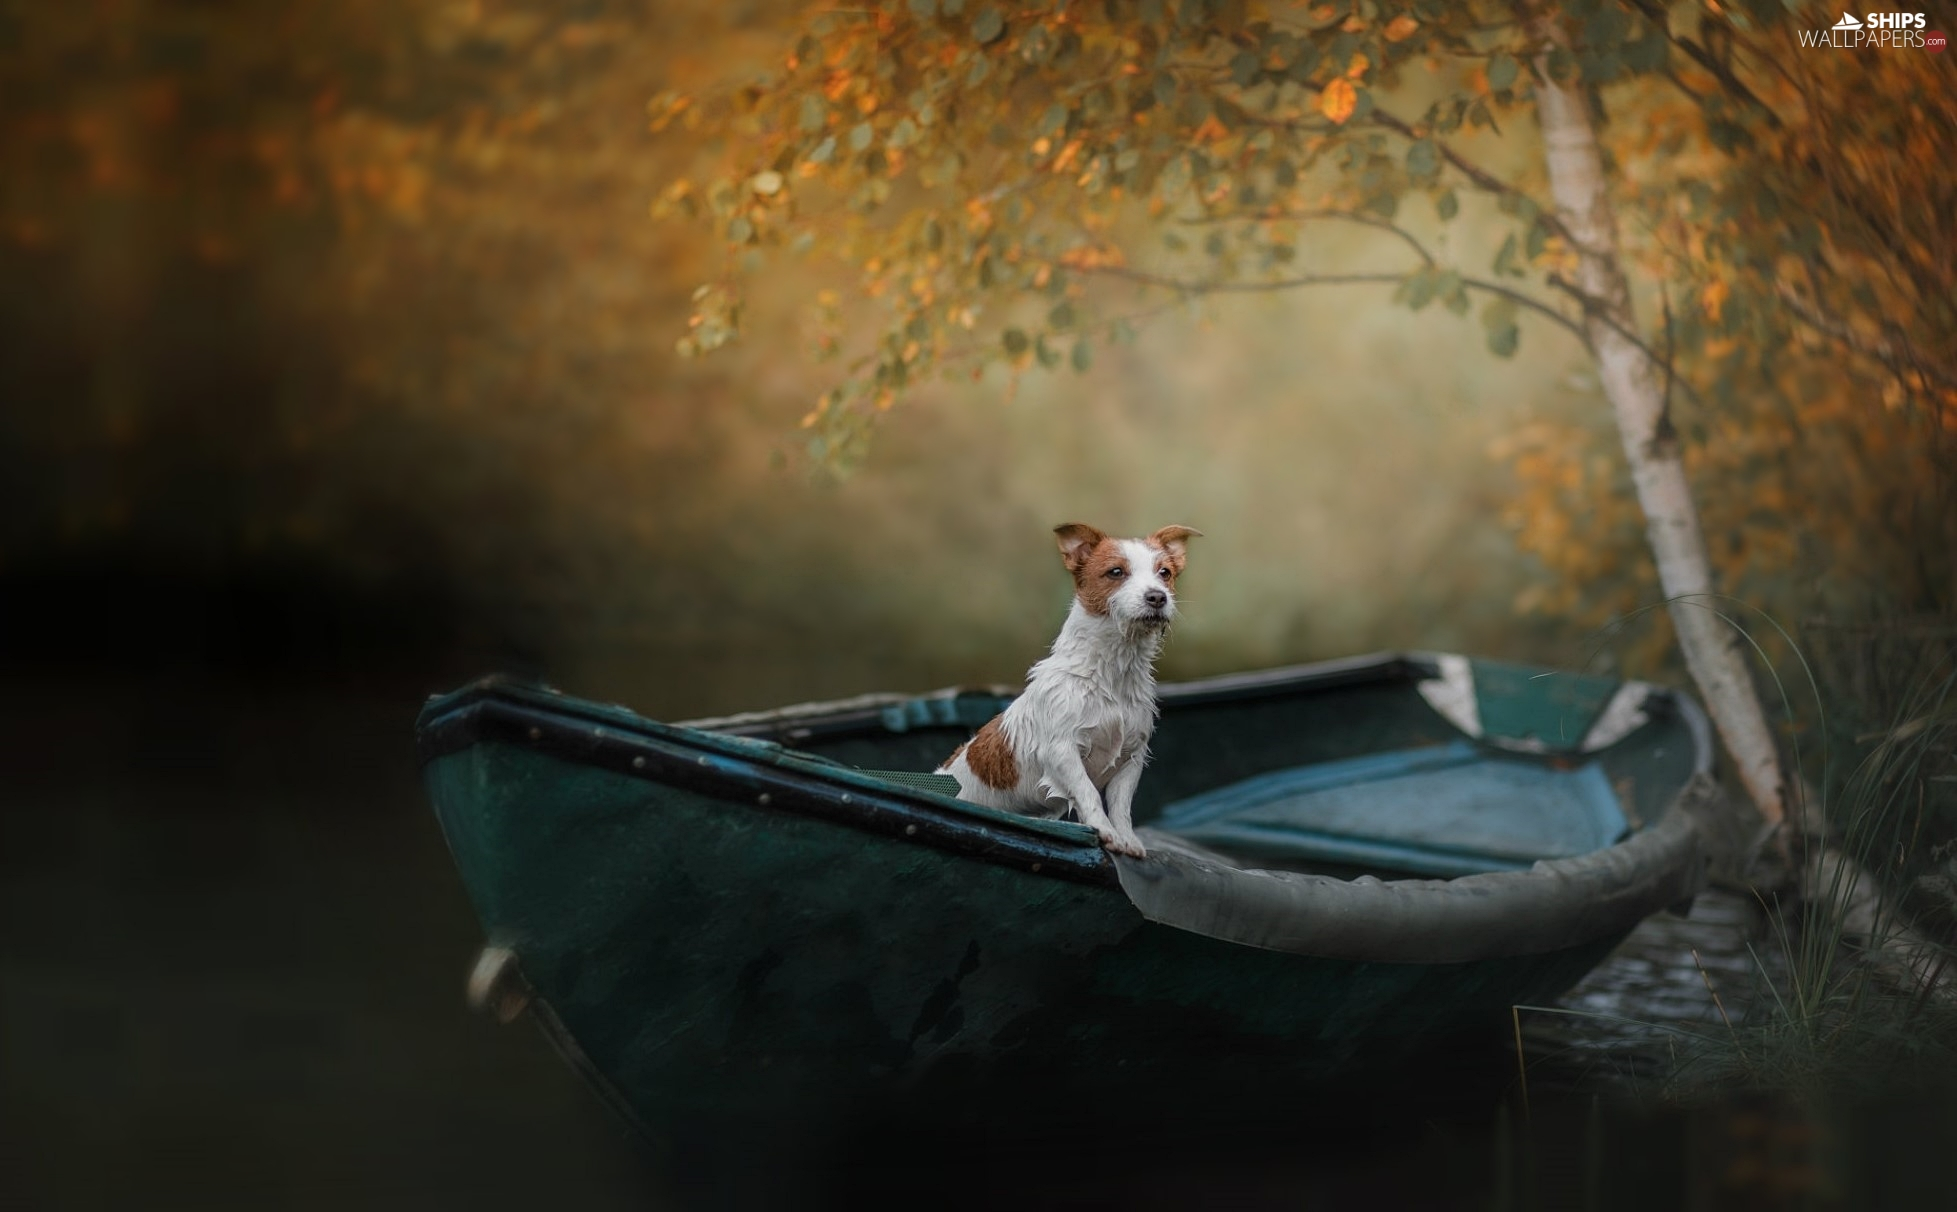 dog, Boat, birch-tree, Jack Russell Terrier